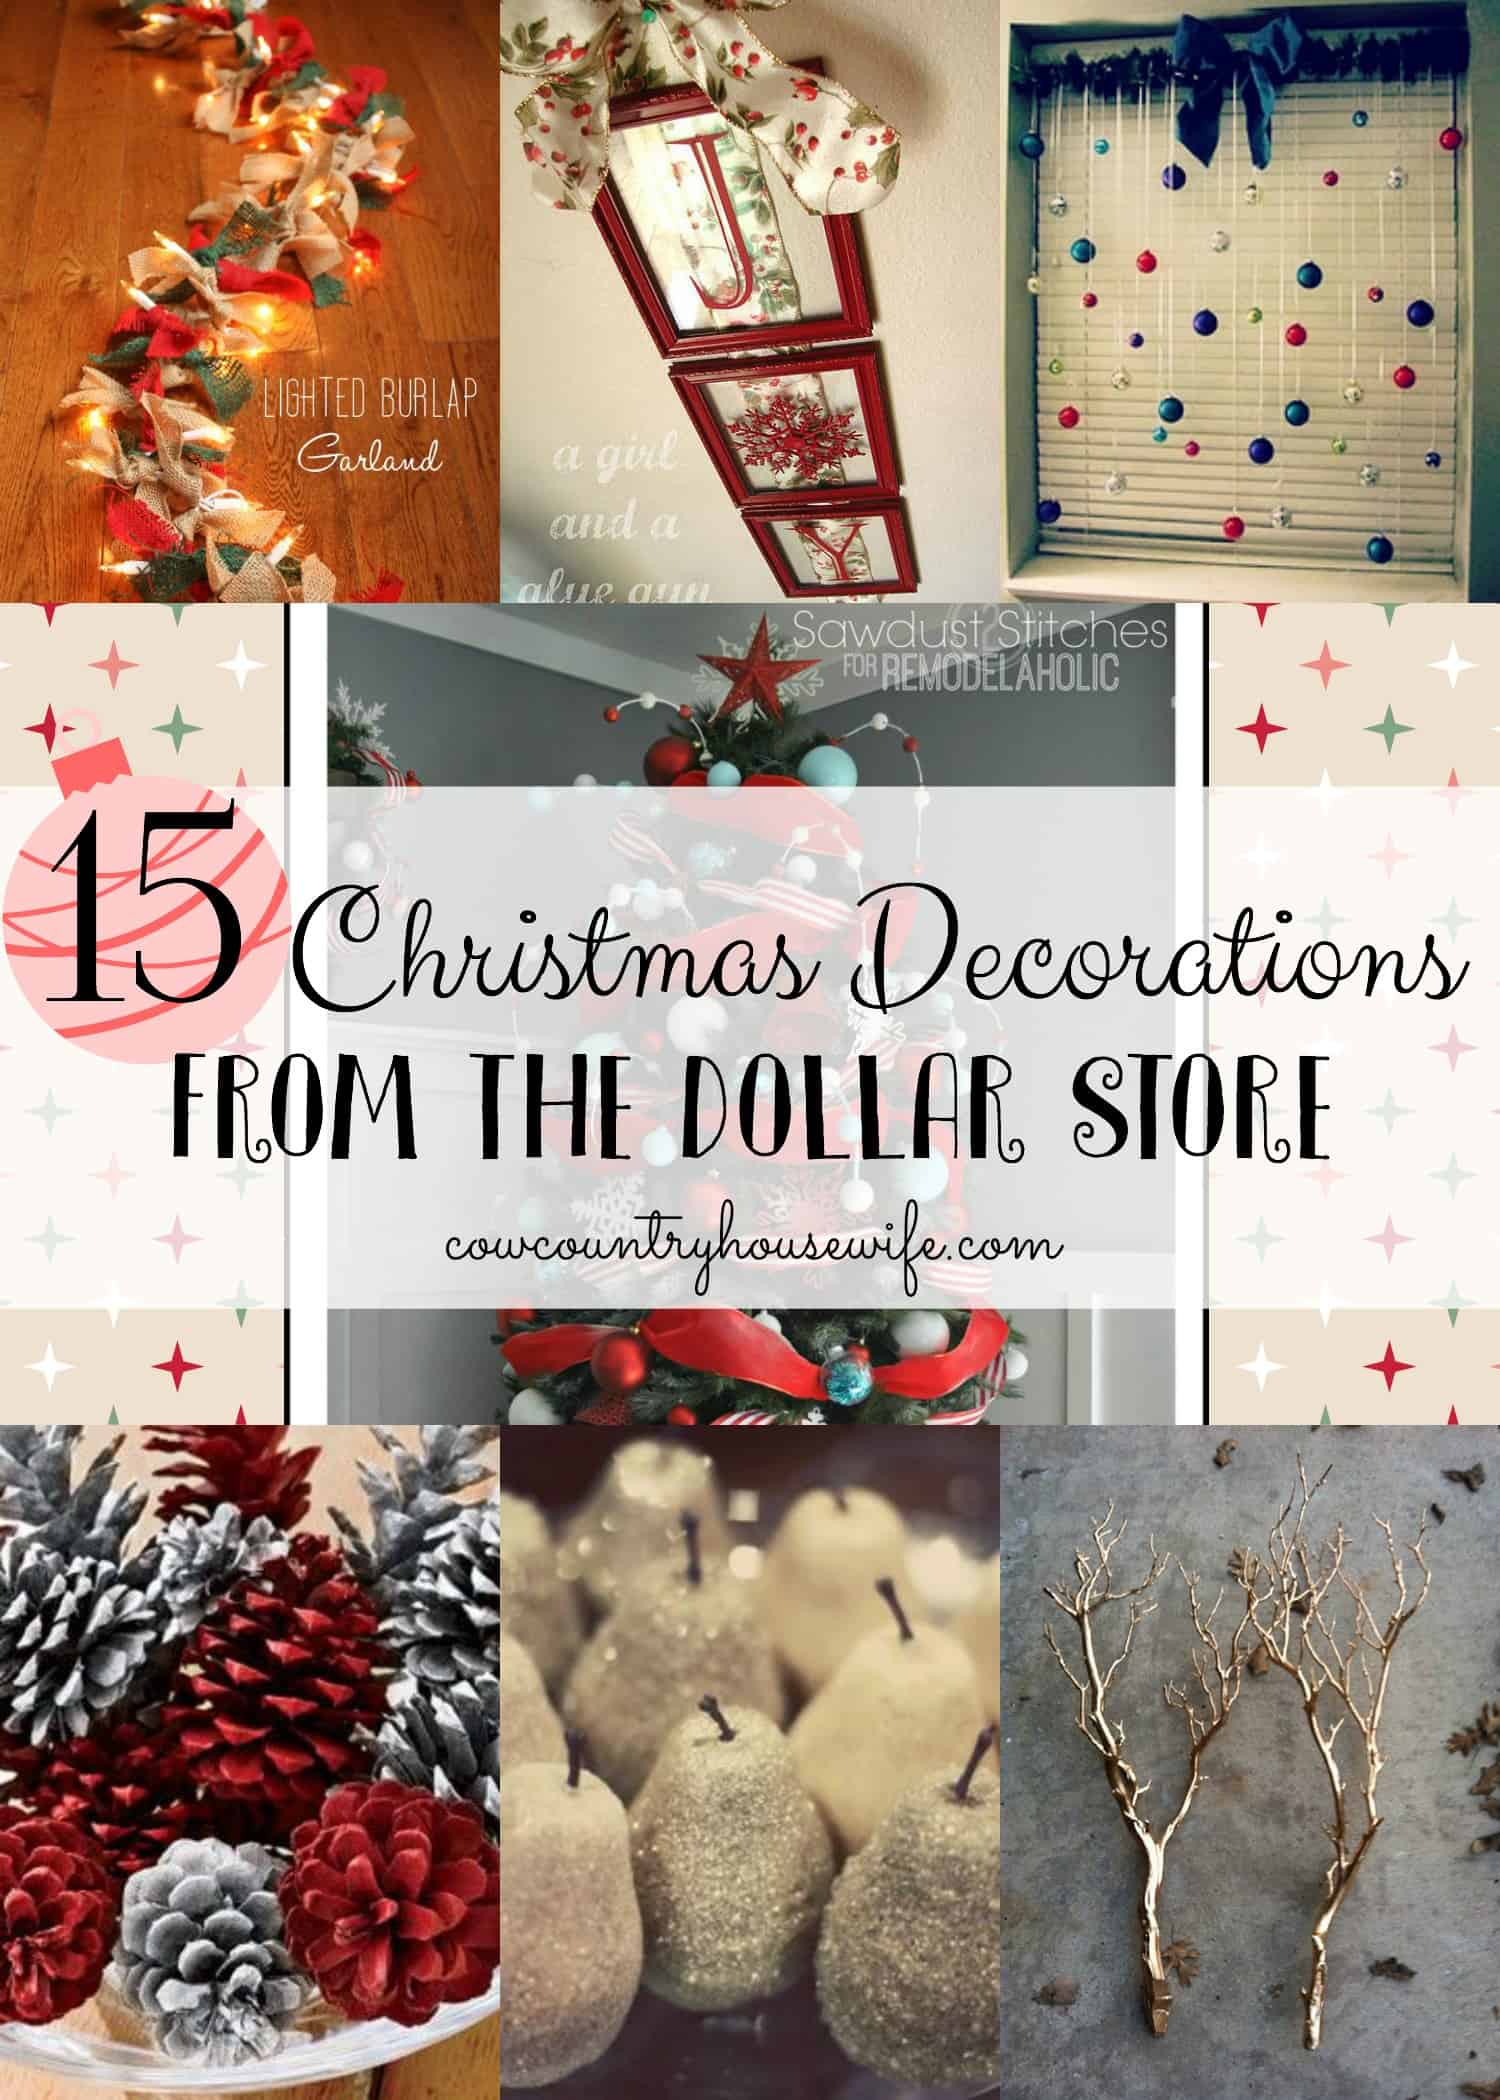 15 christmas decorations from the dollar store - 99 Cent Store Christmas Decorations